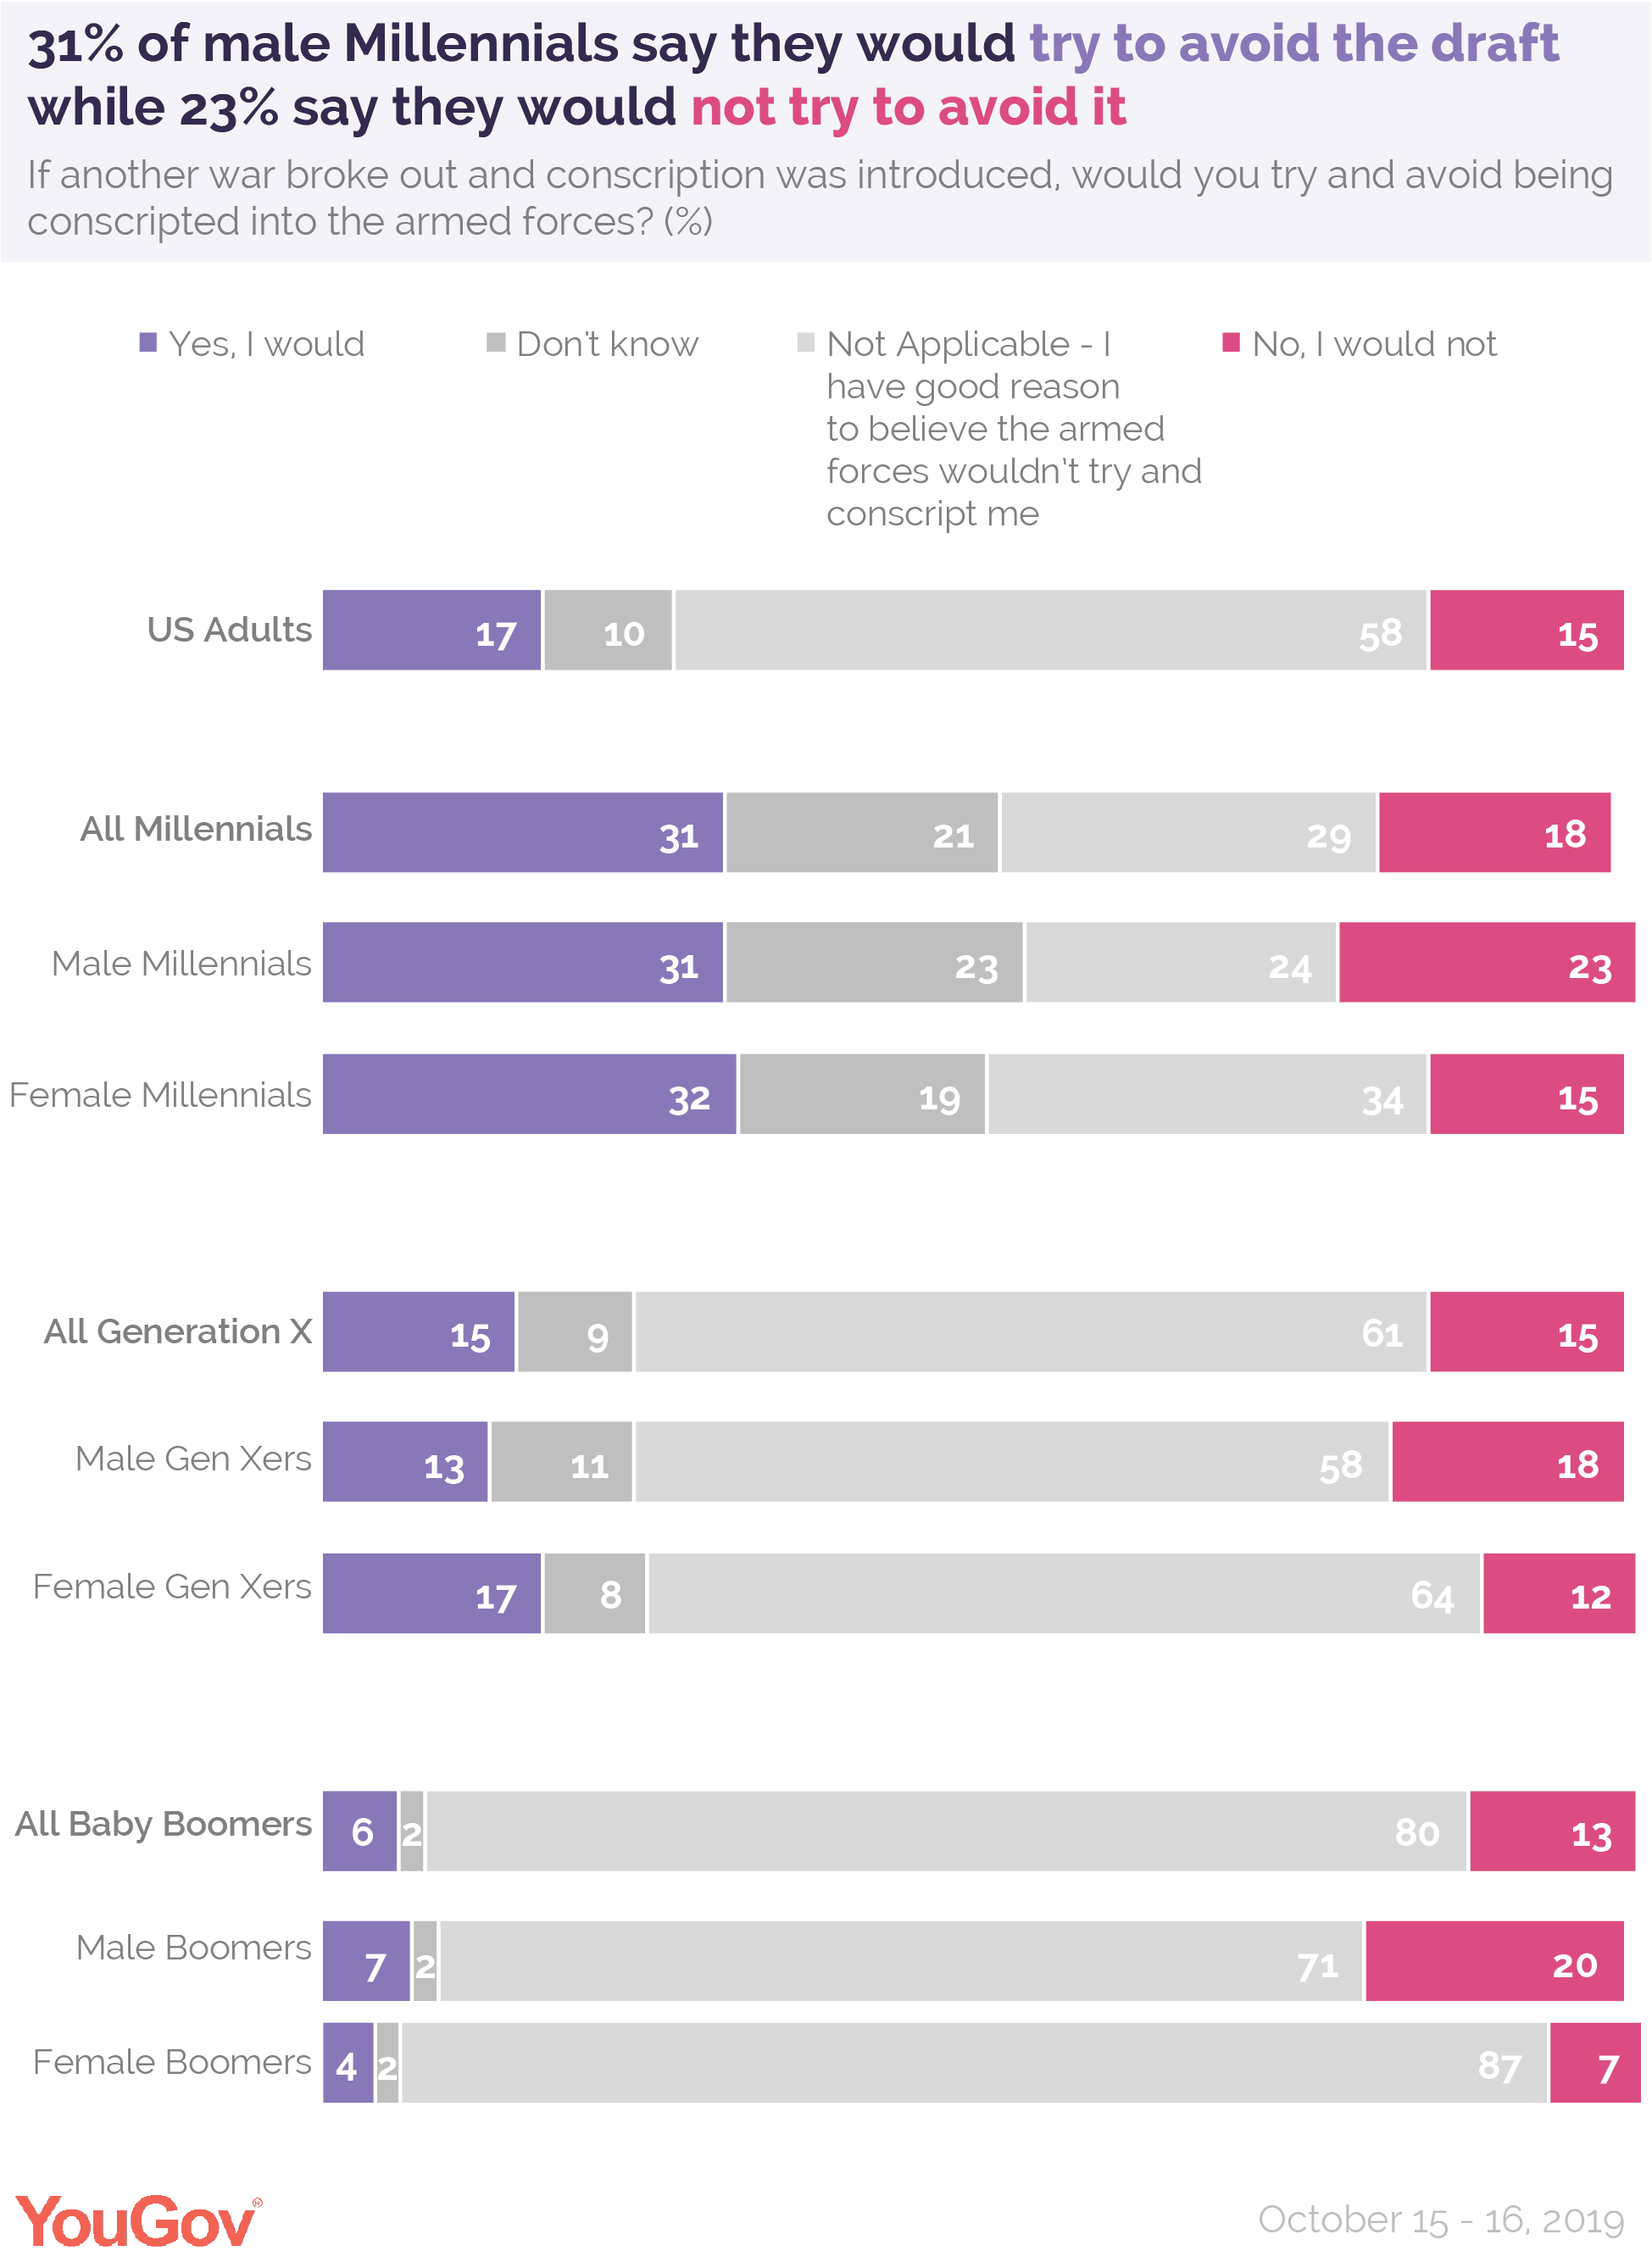 31% of male Millennials say they would try to avoid the draft while 23% say they would not try to avoid it